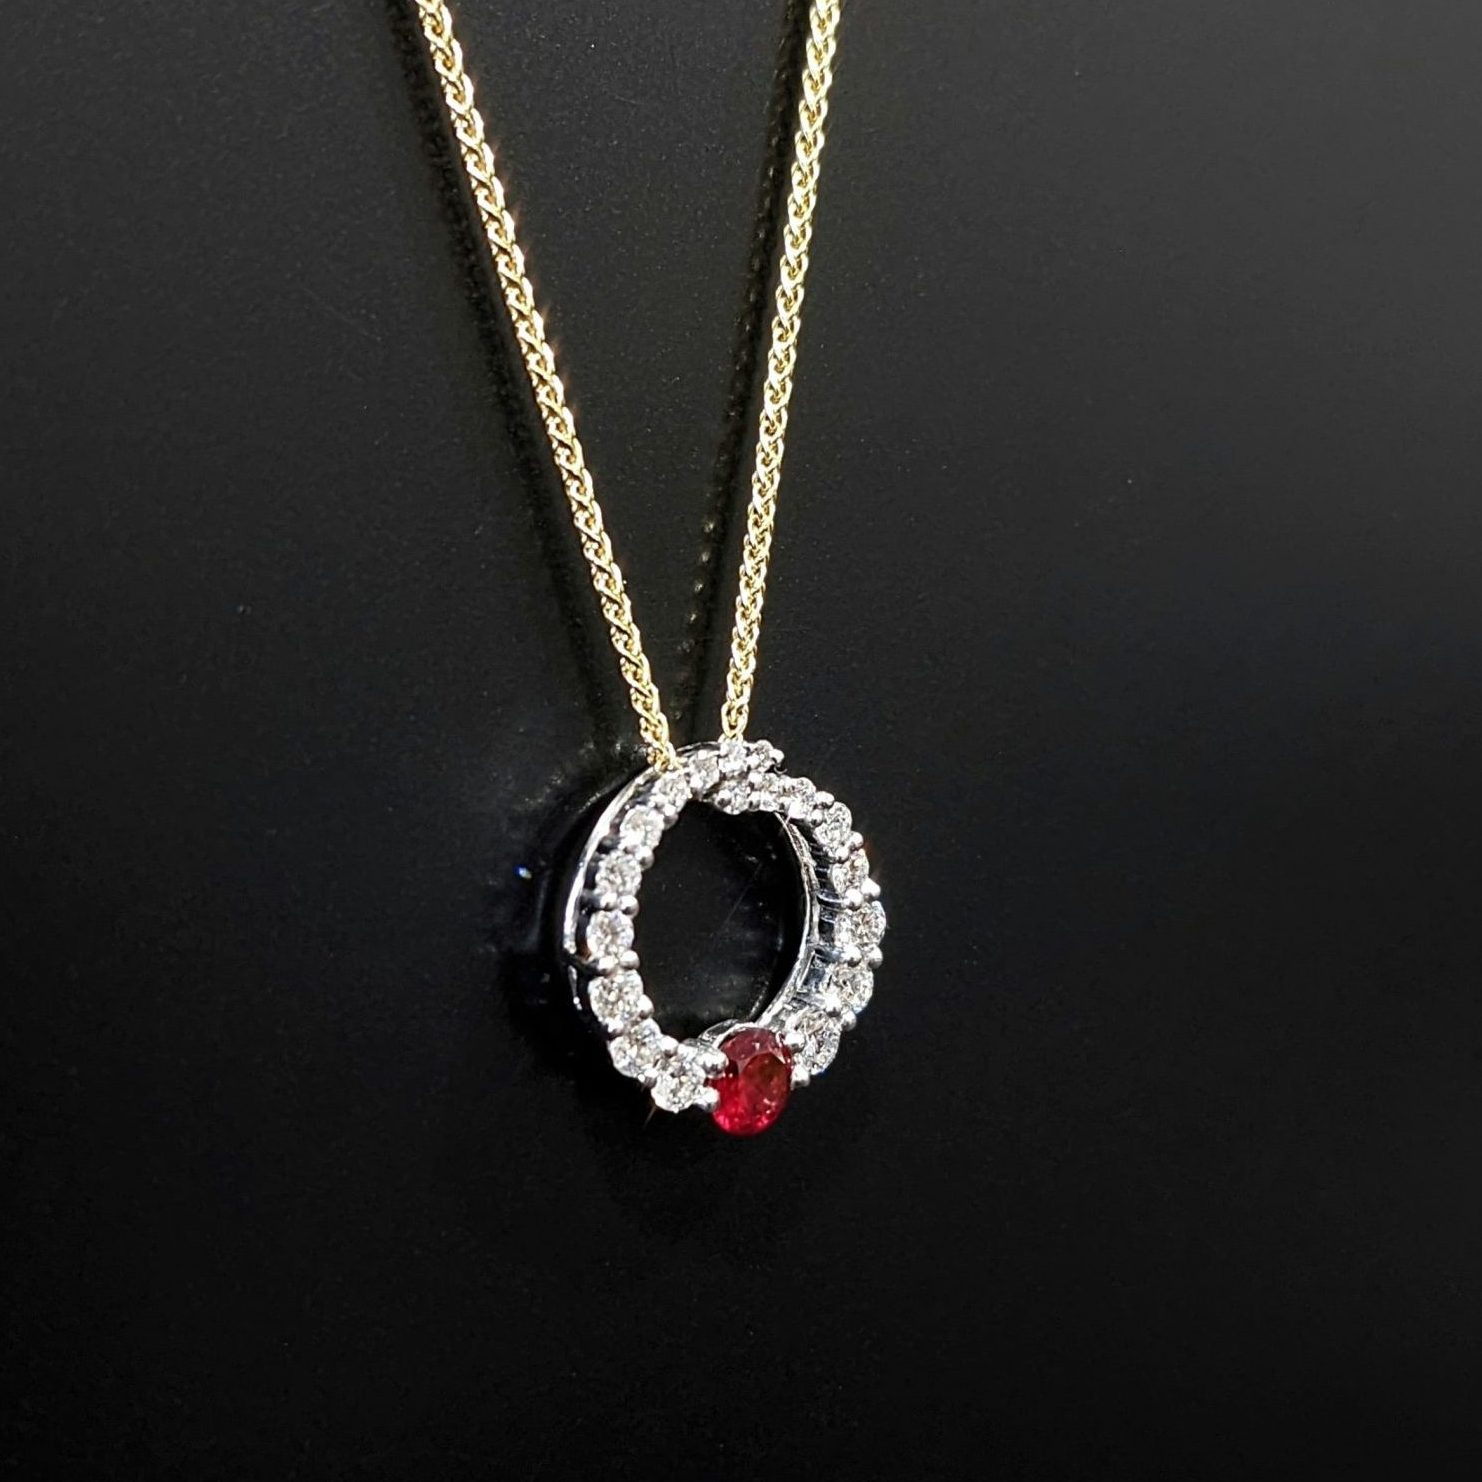 ruby and diamond pendant with yellow gold chain